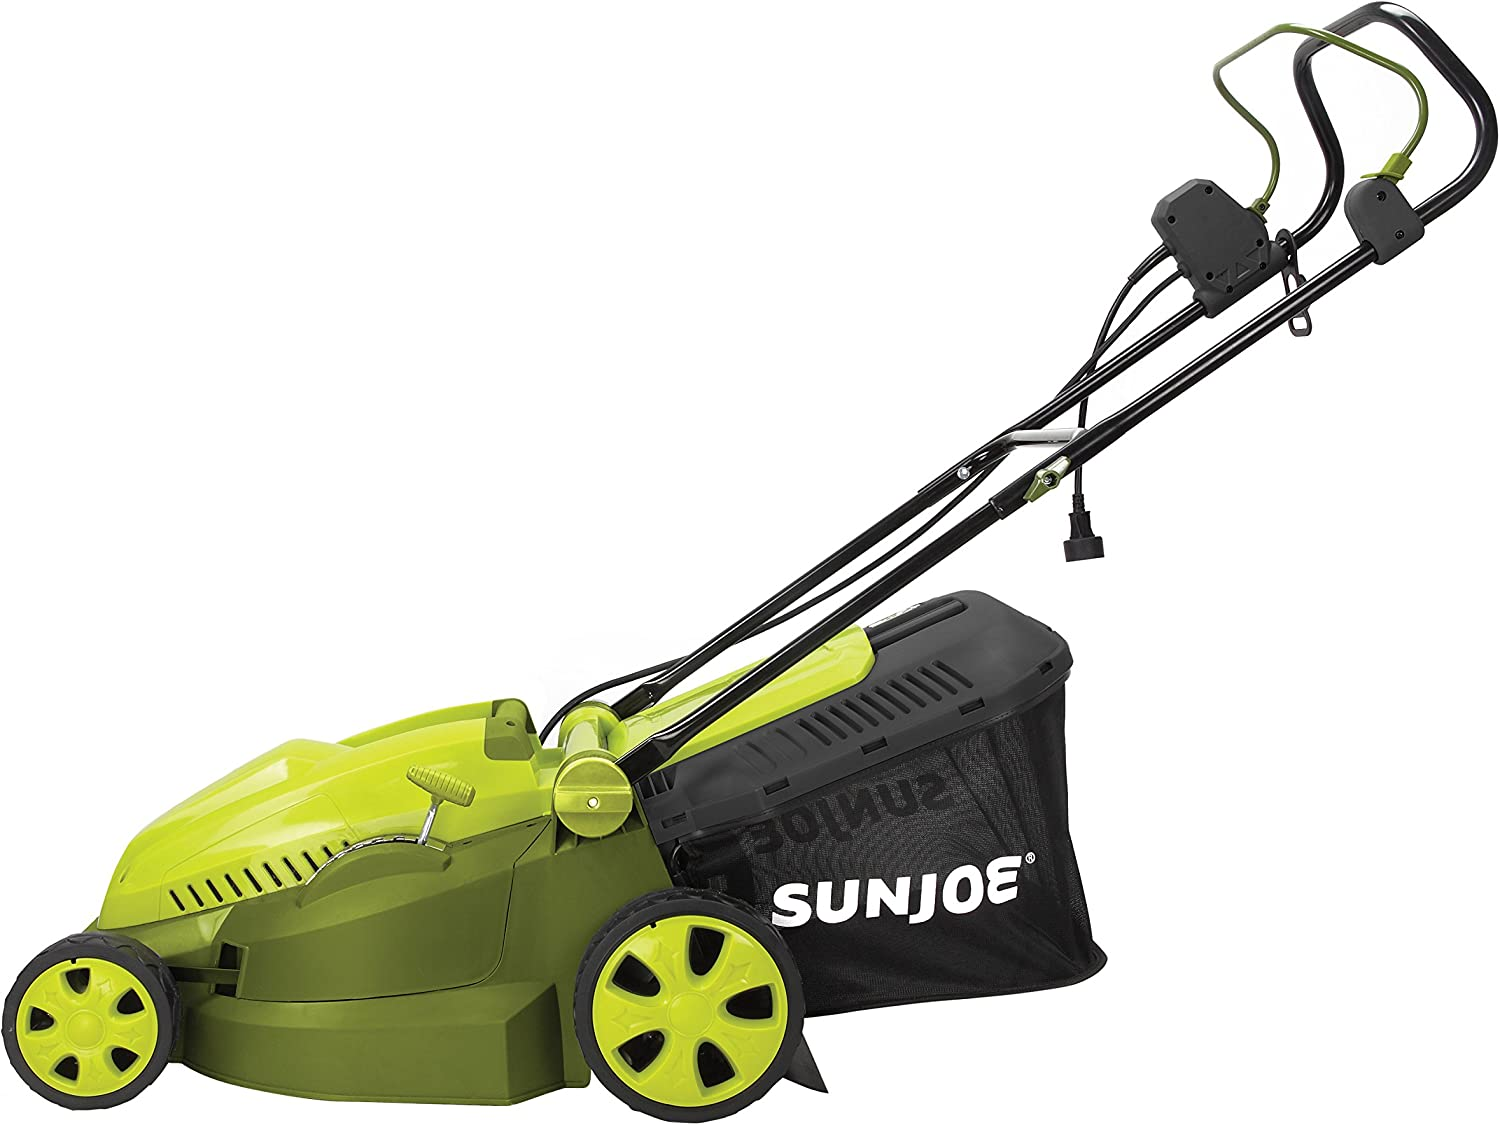 MJ402E Mow Joe 12-Amp Electric Lawn Mower